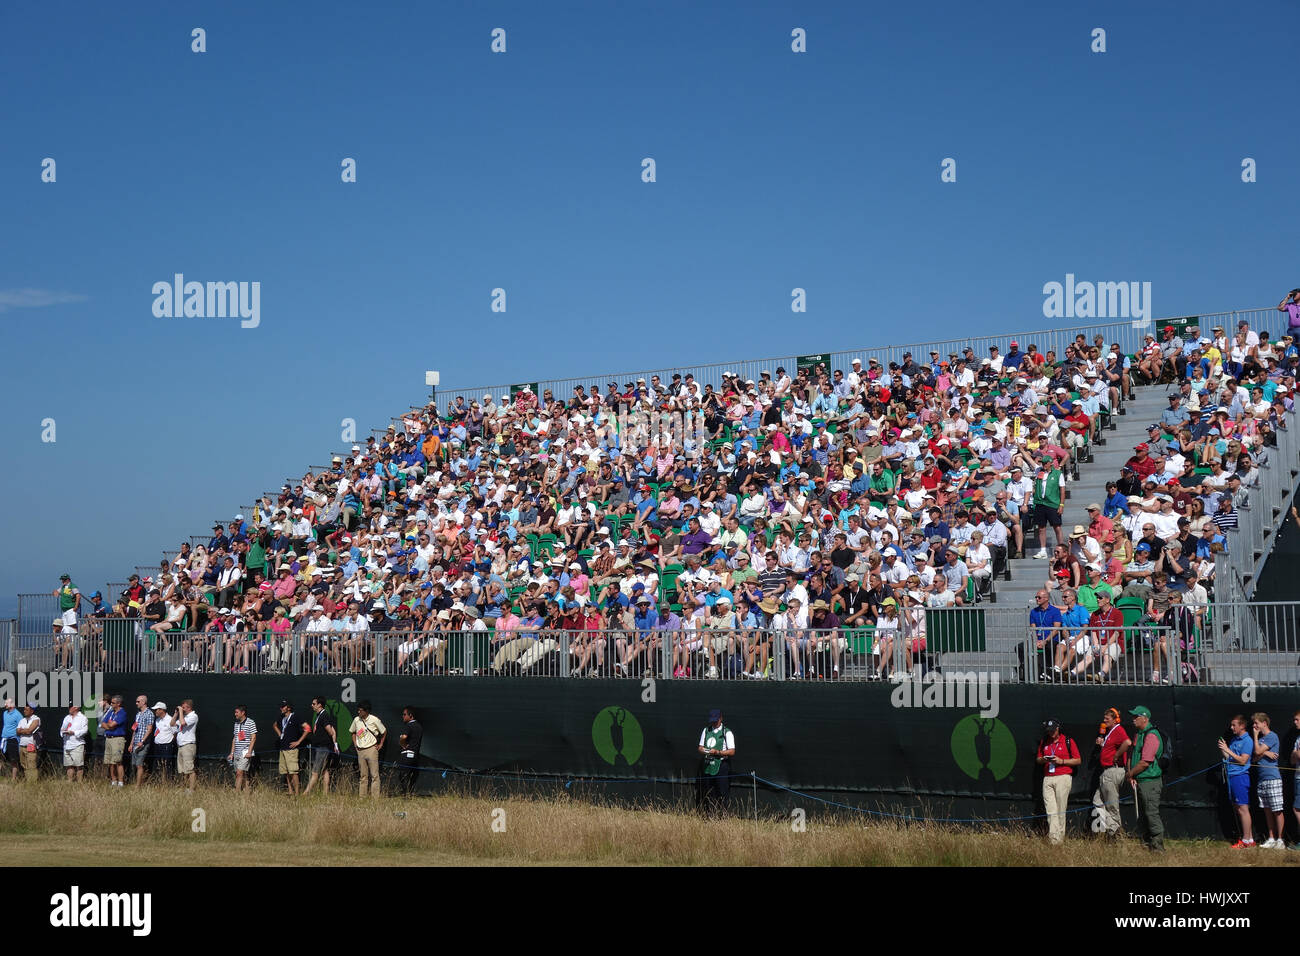 SPECTATOR GANTRY THE OPEN CHAMPIONSHIP THE OPEN CHAMPIONSHIP MUIRFIELD EAST LOTHIAN SCOTLAND 19 July 2013 - Stock Image